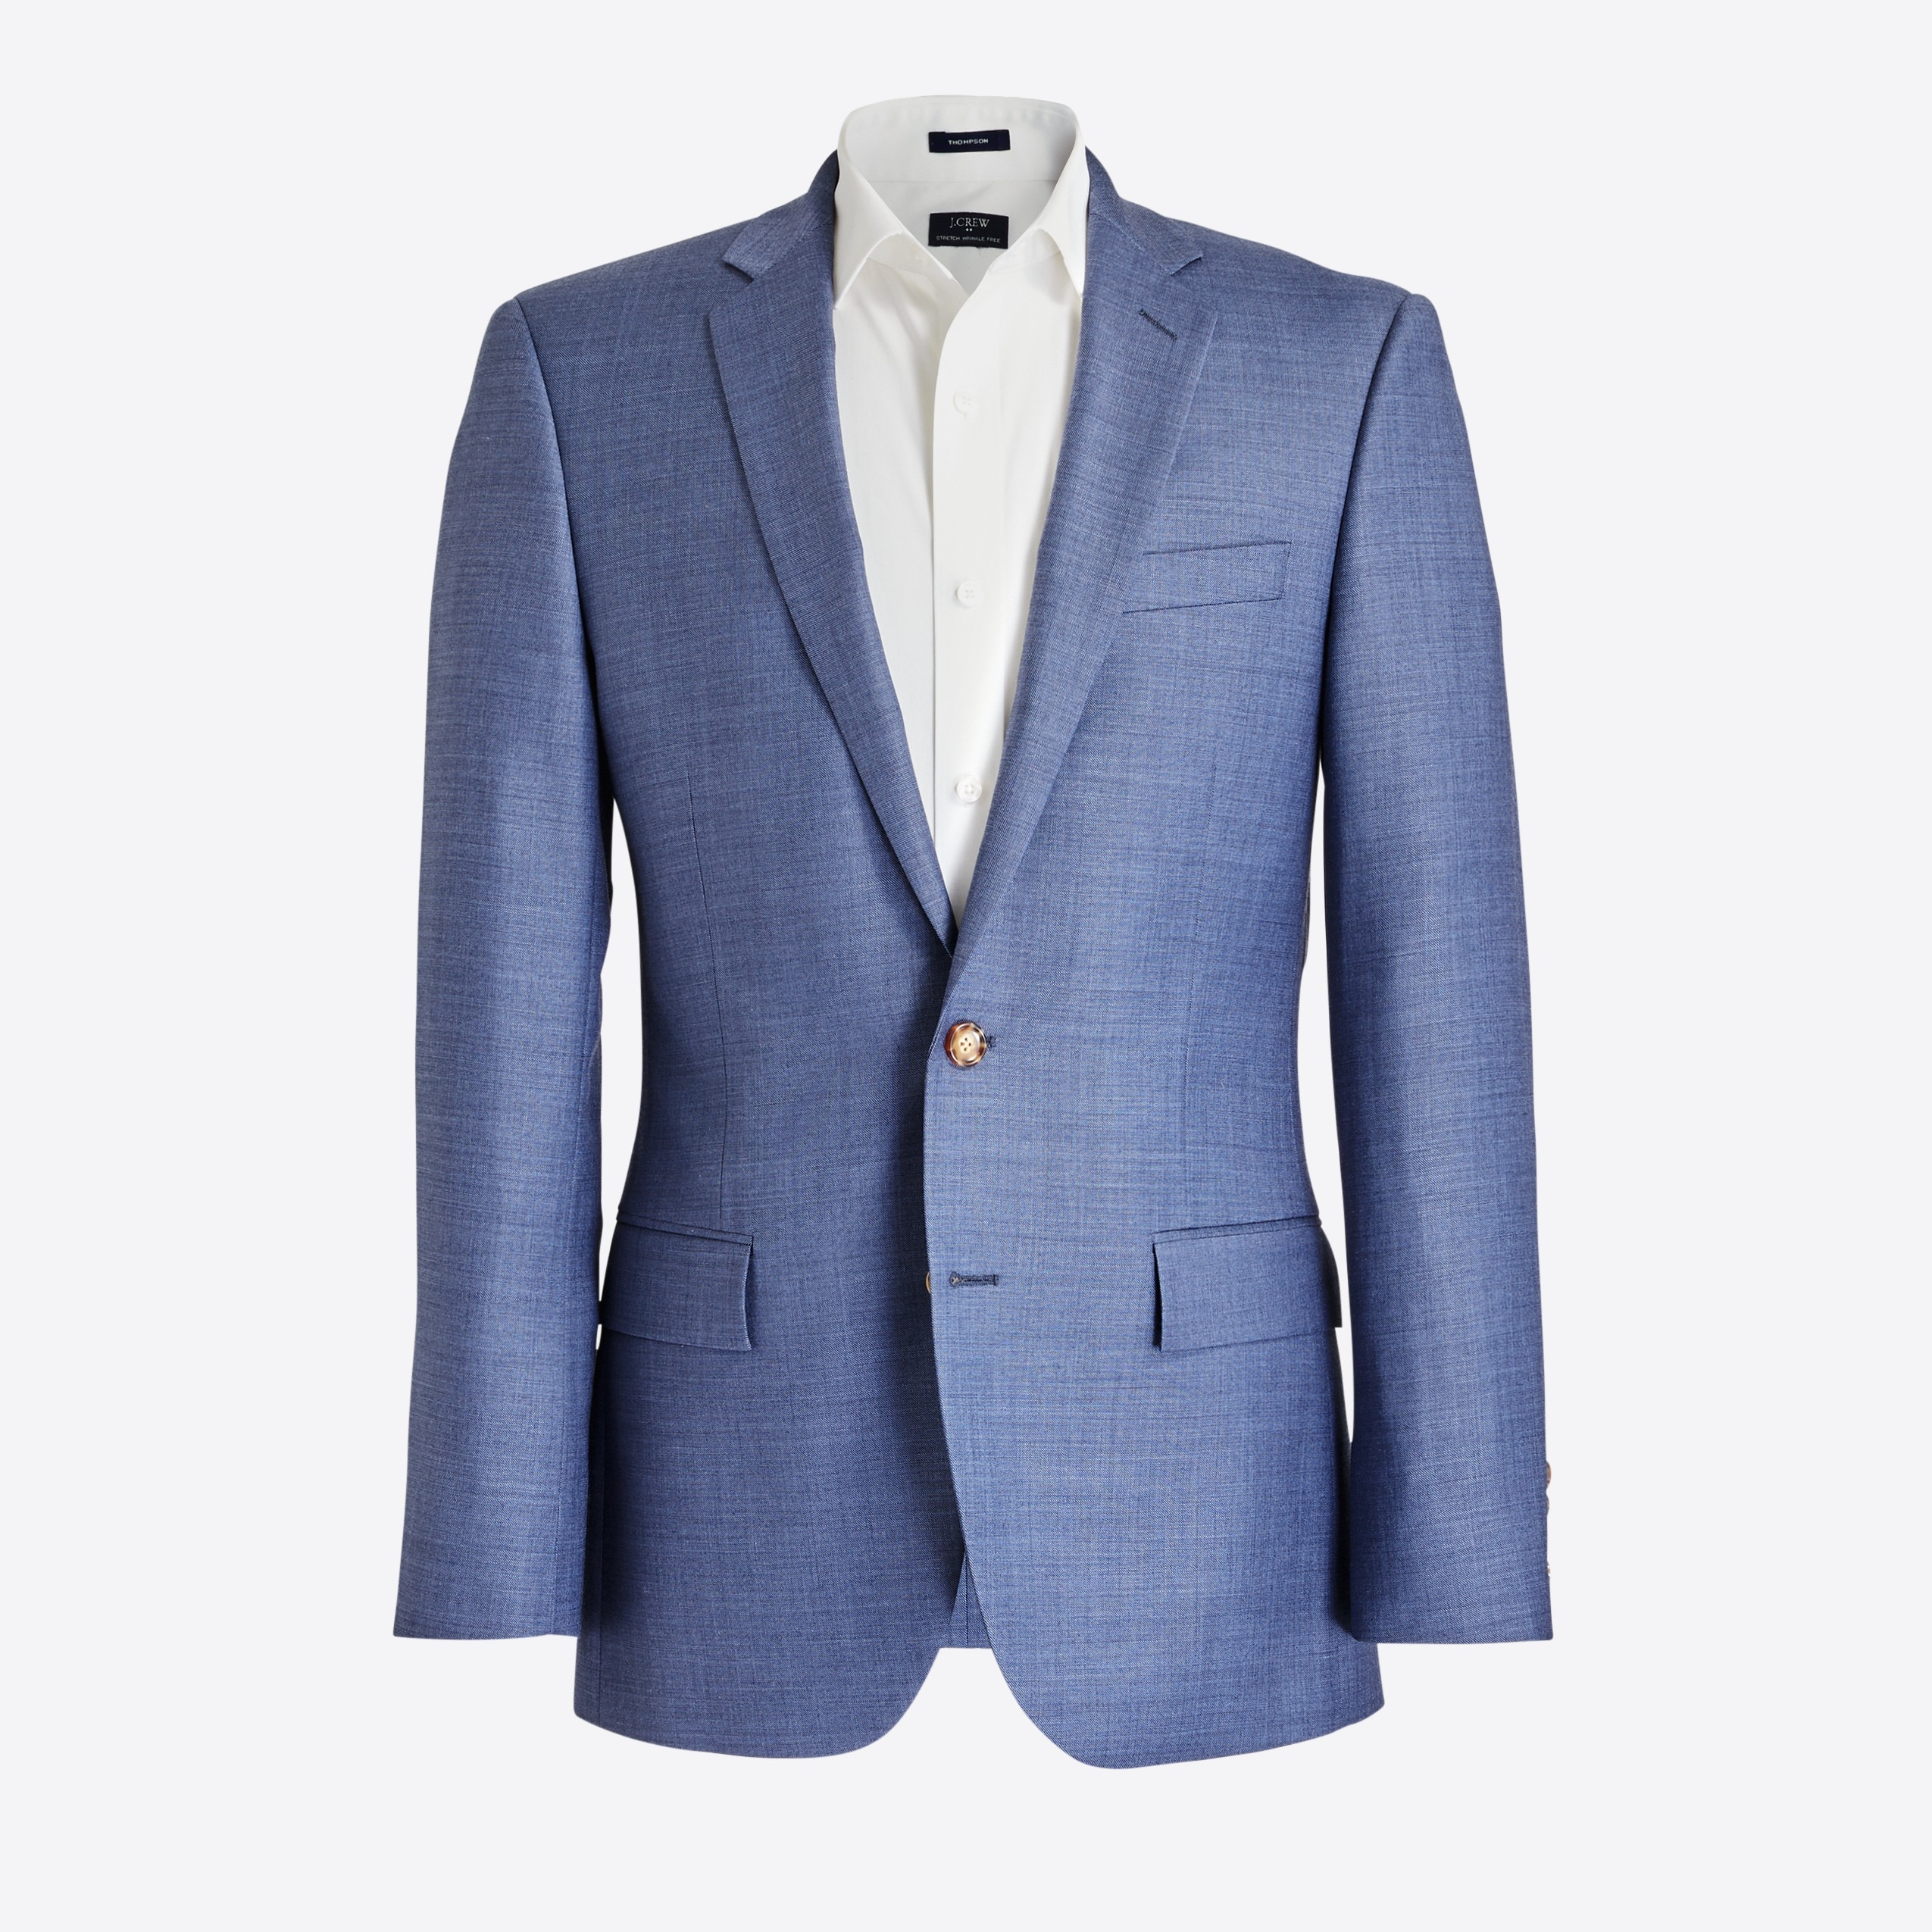 Slim Thompson suit jacket in worsted wool